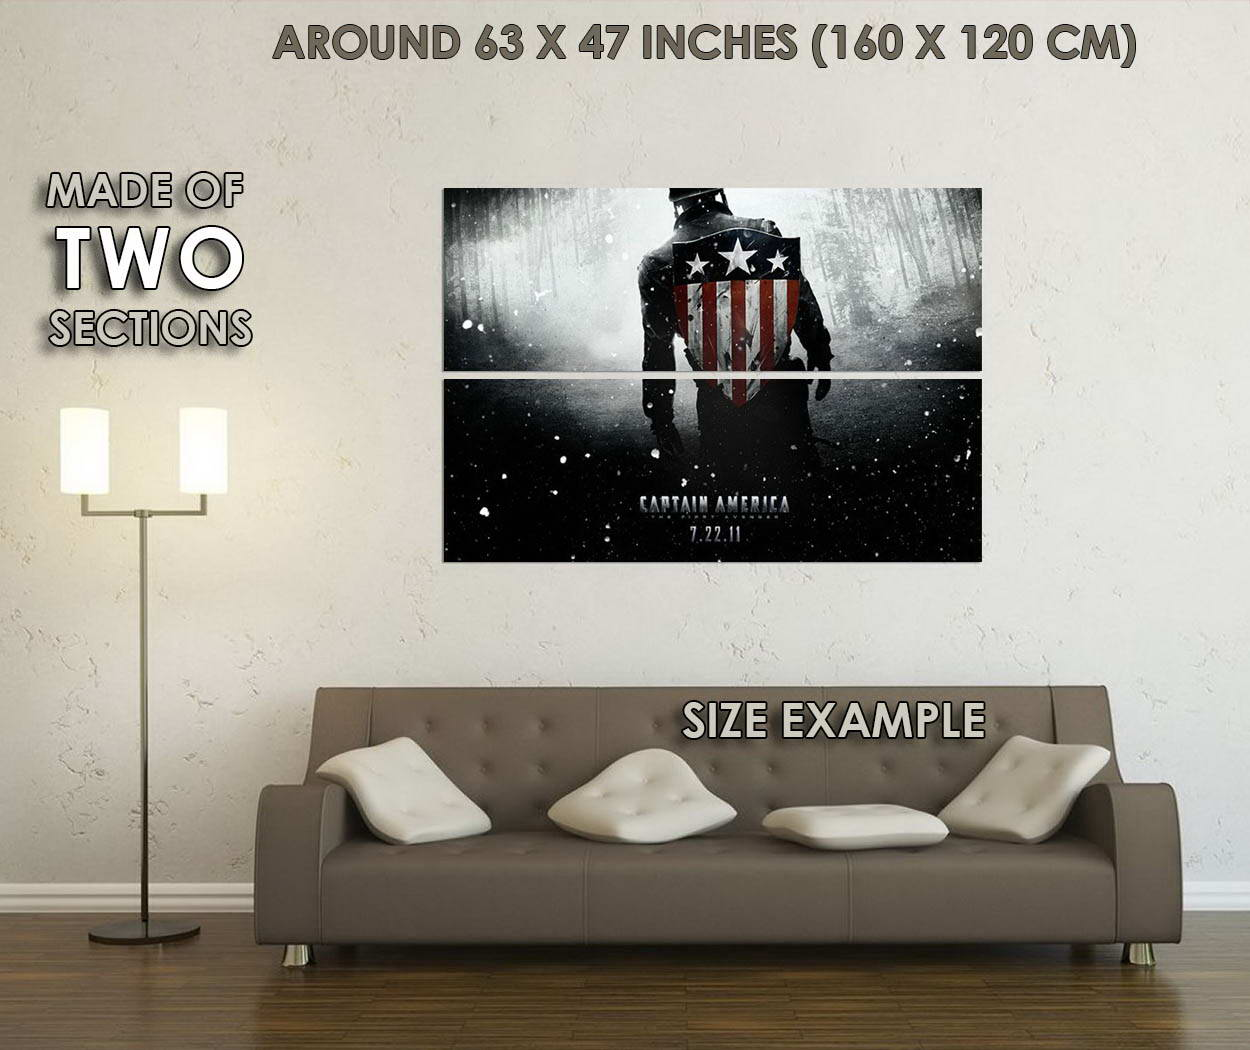 10207-Captain-America-2-The-Winter-Solider-LAMINATED-POSTER-CA thumbnail 6